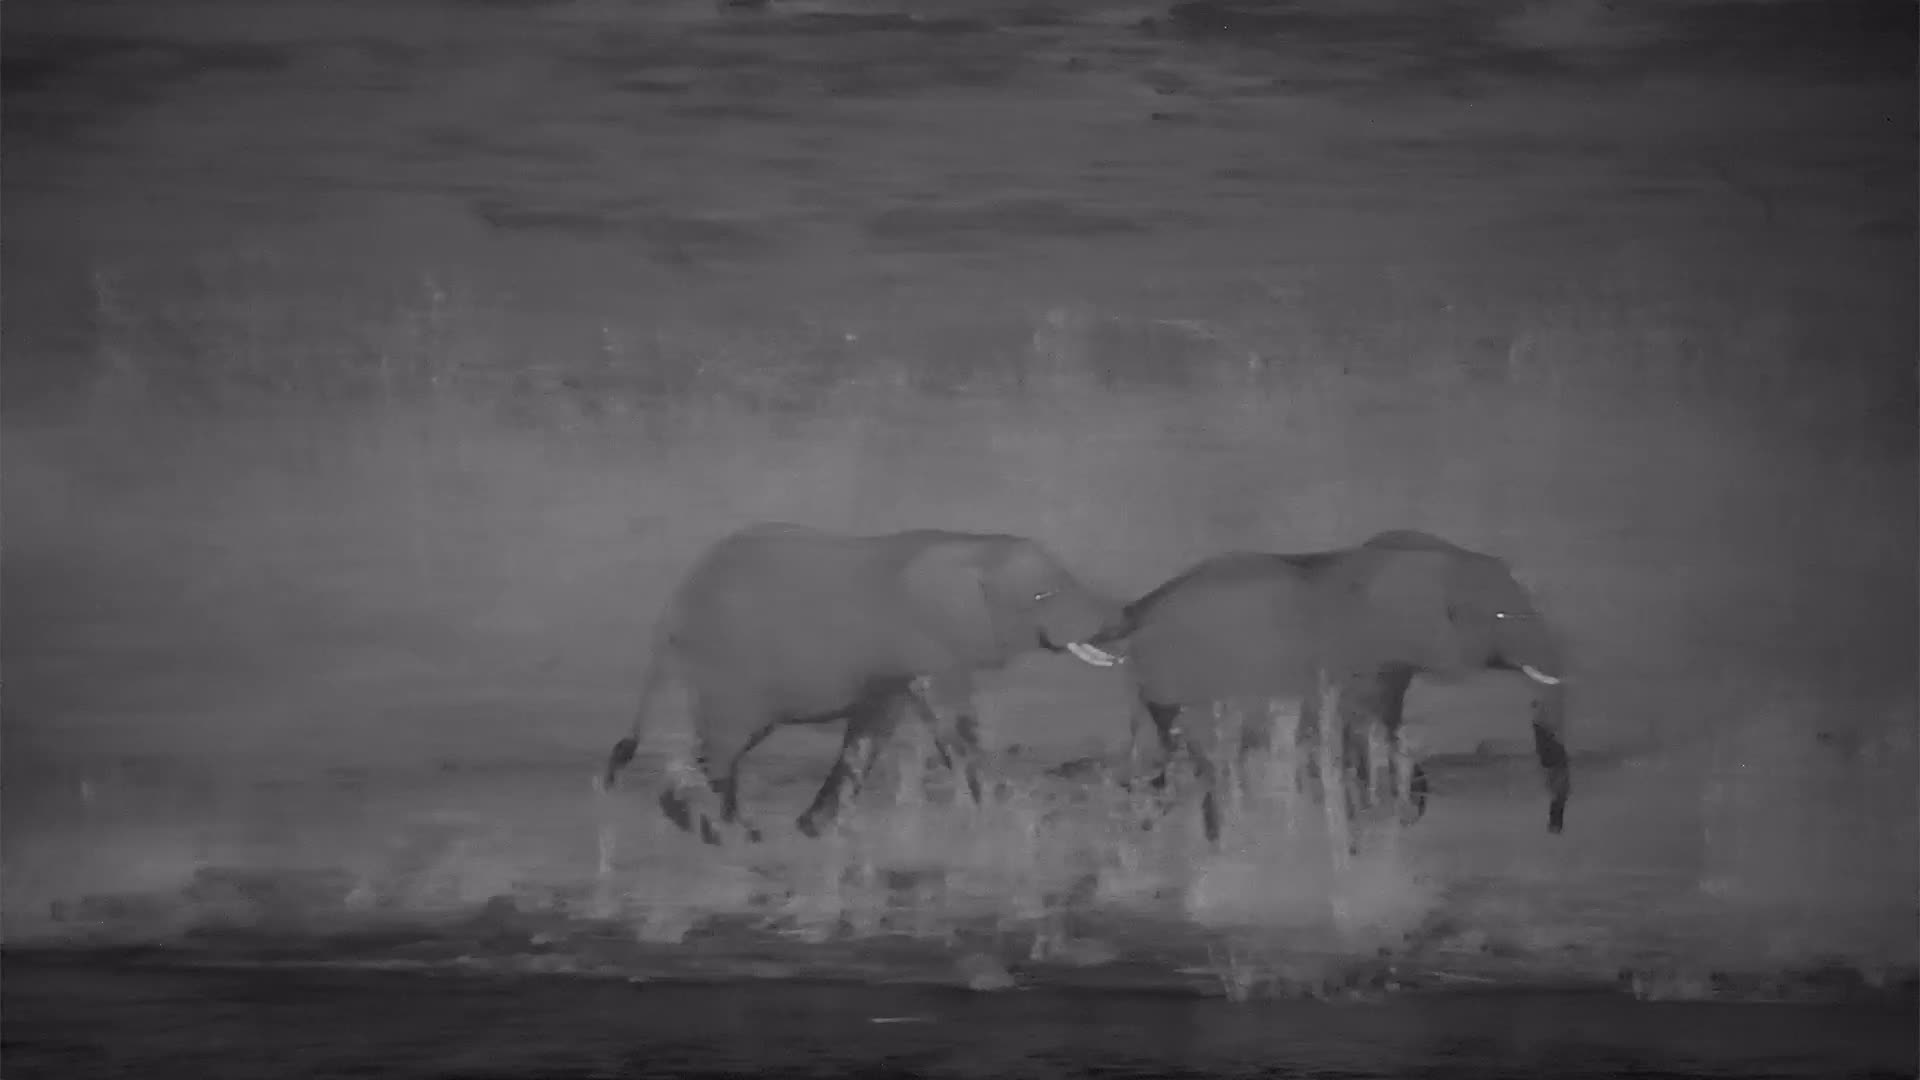 VIDEO: Young Elephants Bull wrangling and pushing each other